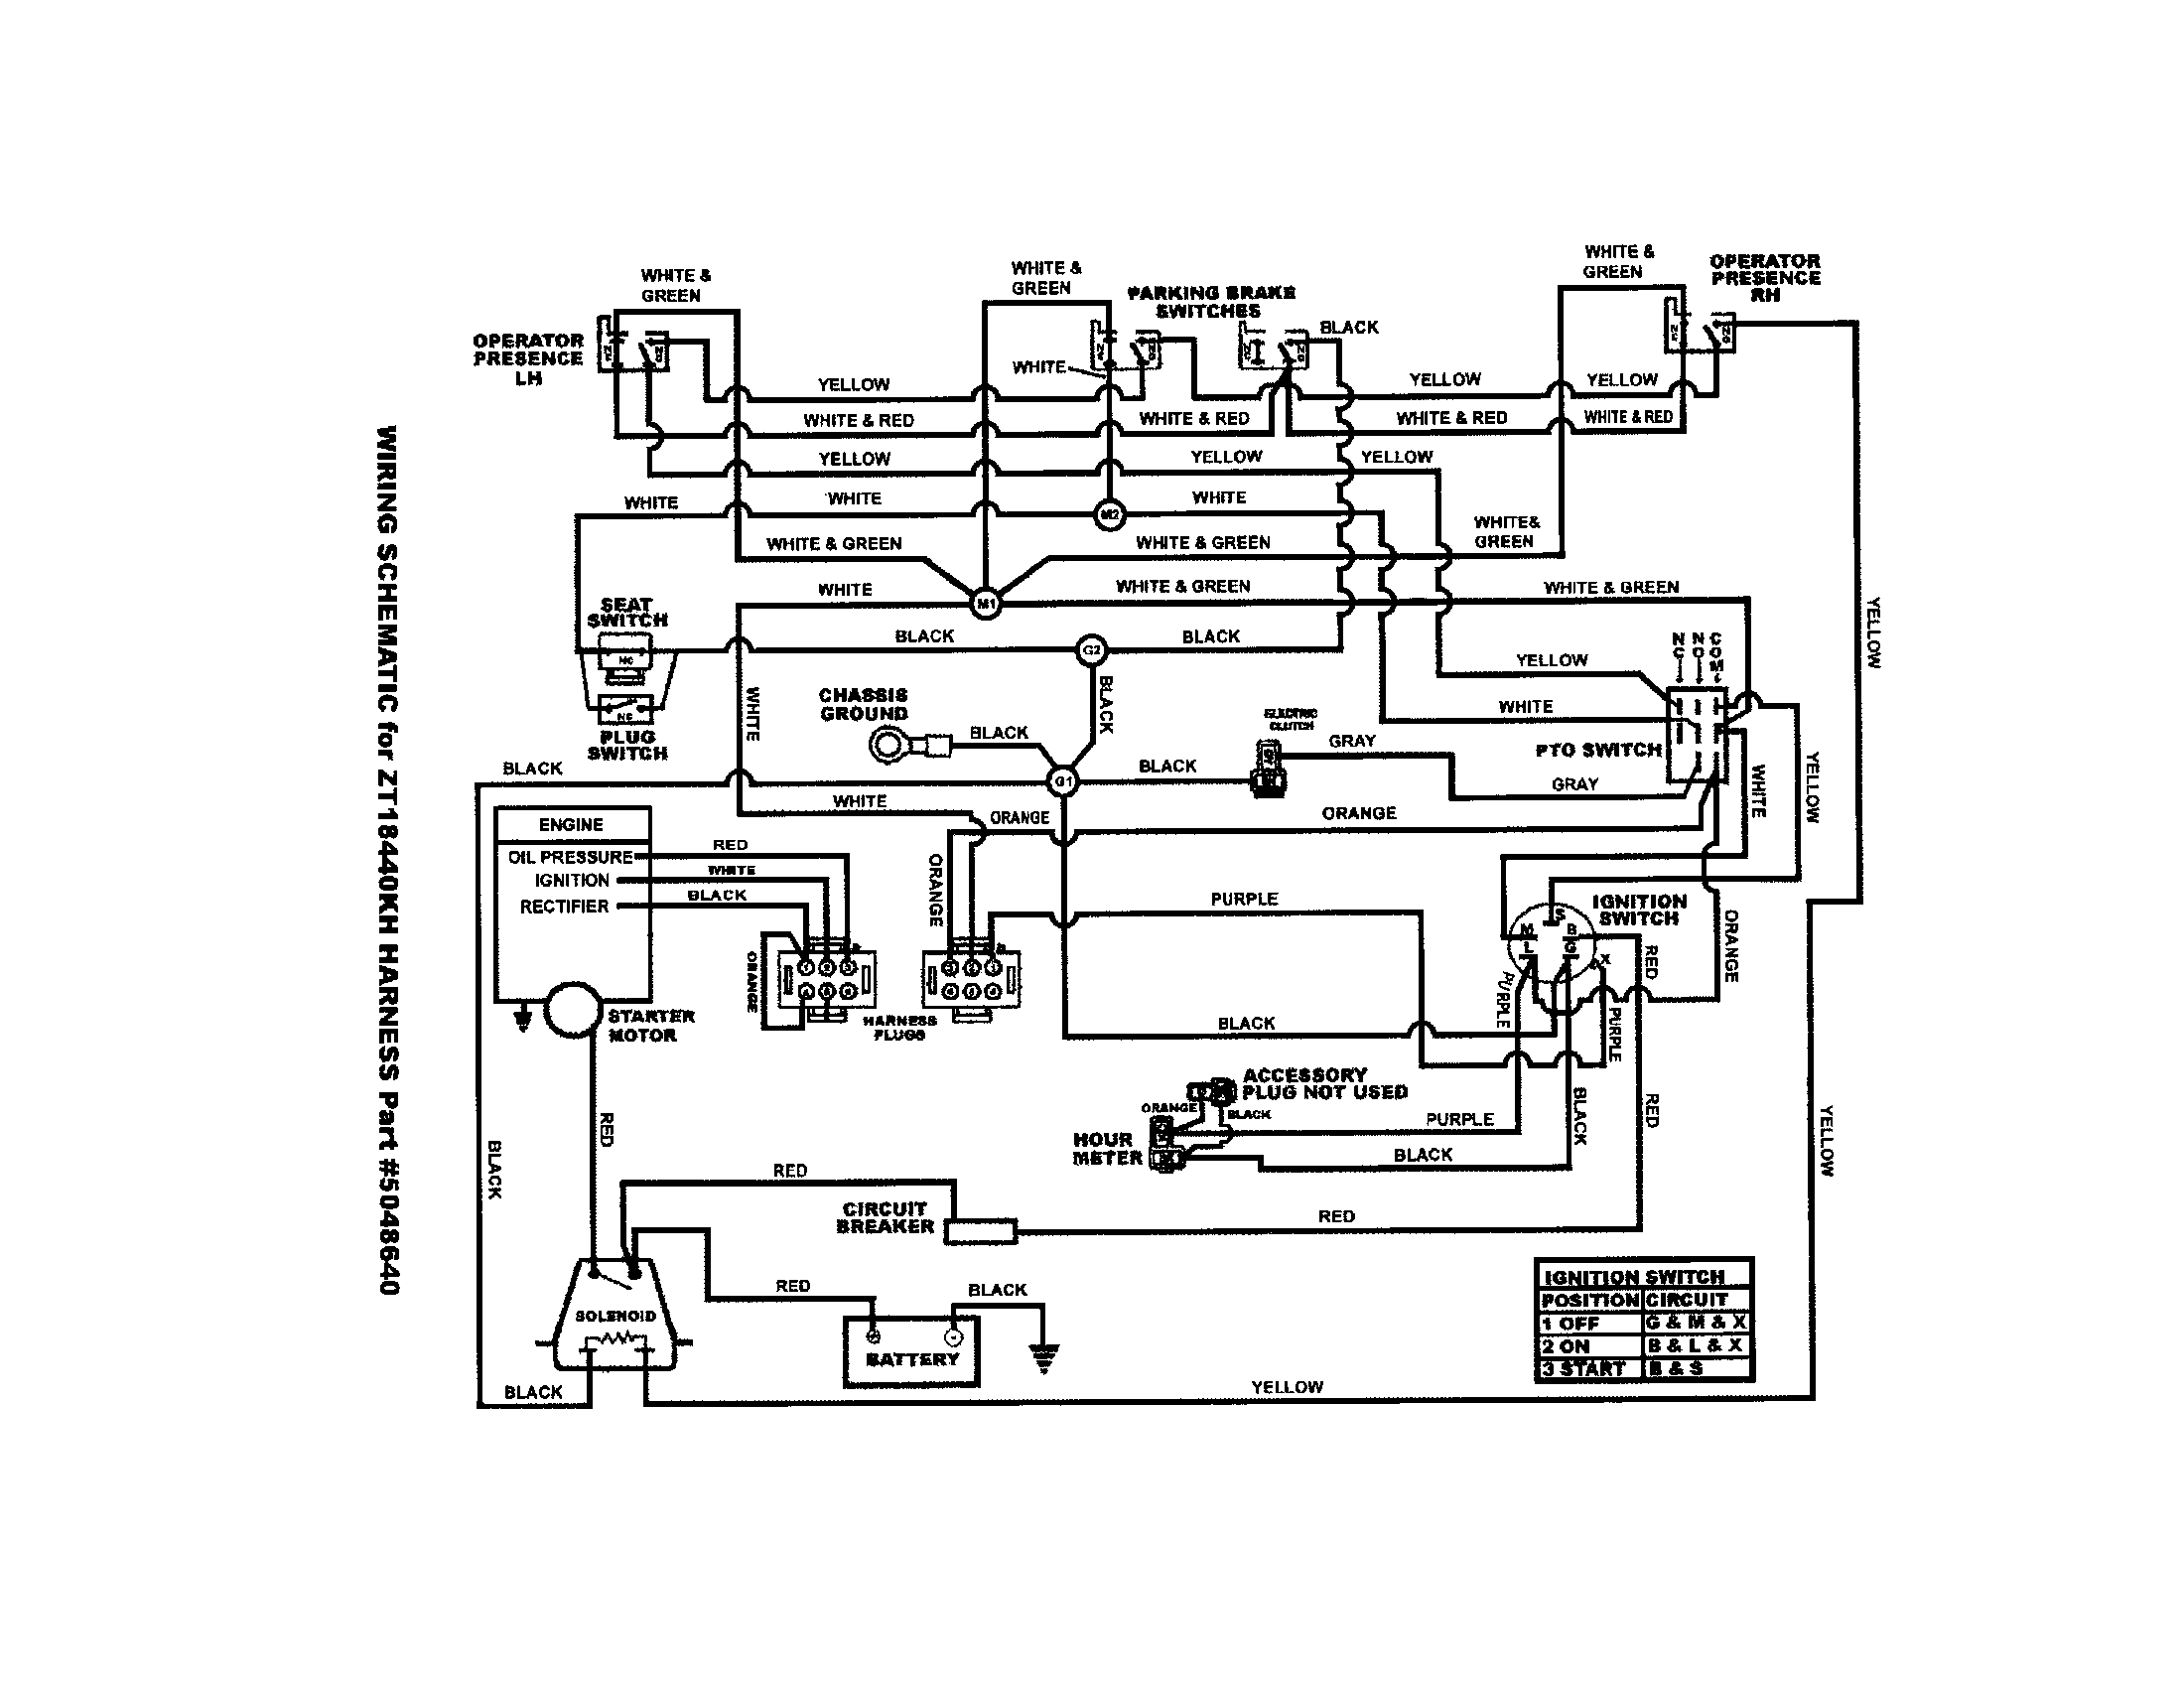 Simplicity Broadmoor #1693694 Electrical Wiring Diagram